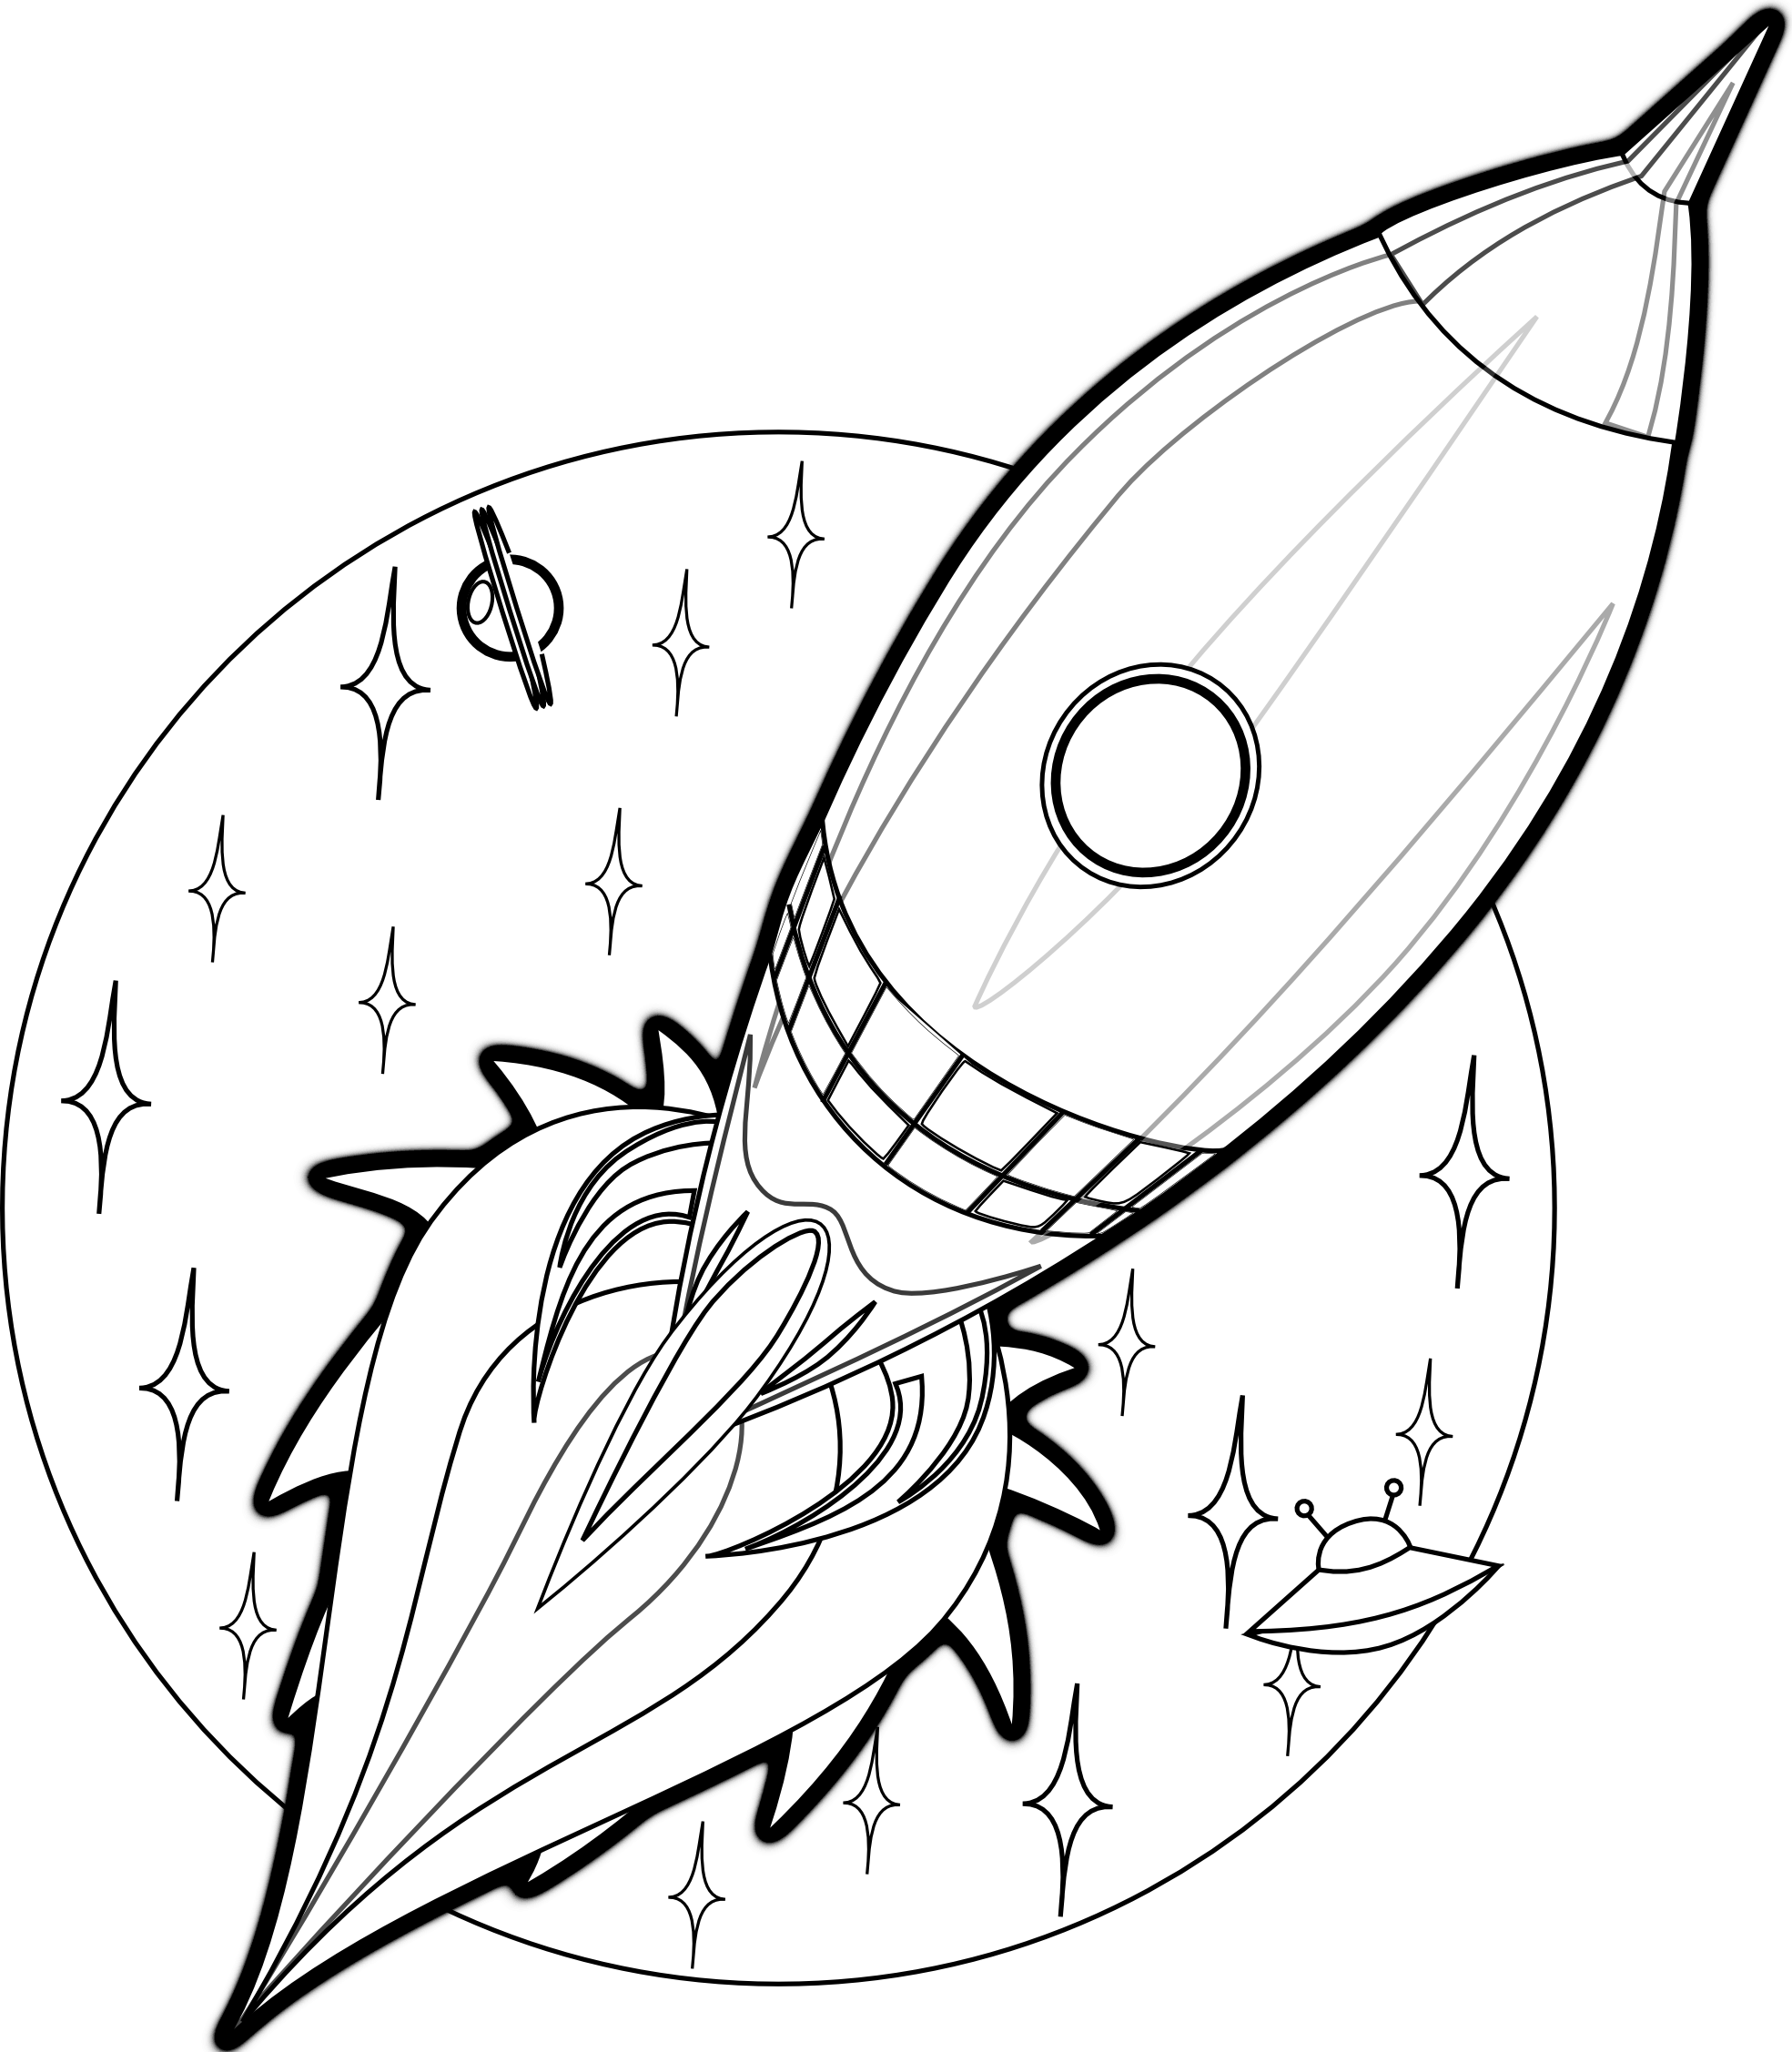 Pin By Mary Mccurdy On Reference Images Rocket Ships Space Coloring Pages Printable Rocket Ship Coloring Pages For Teenagers